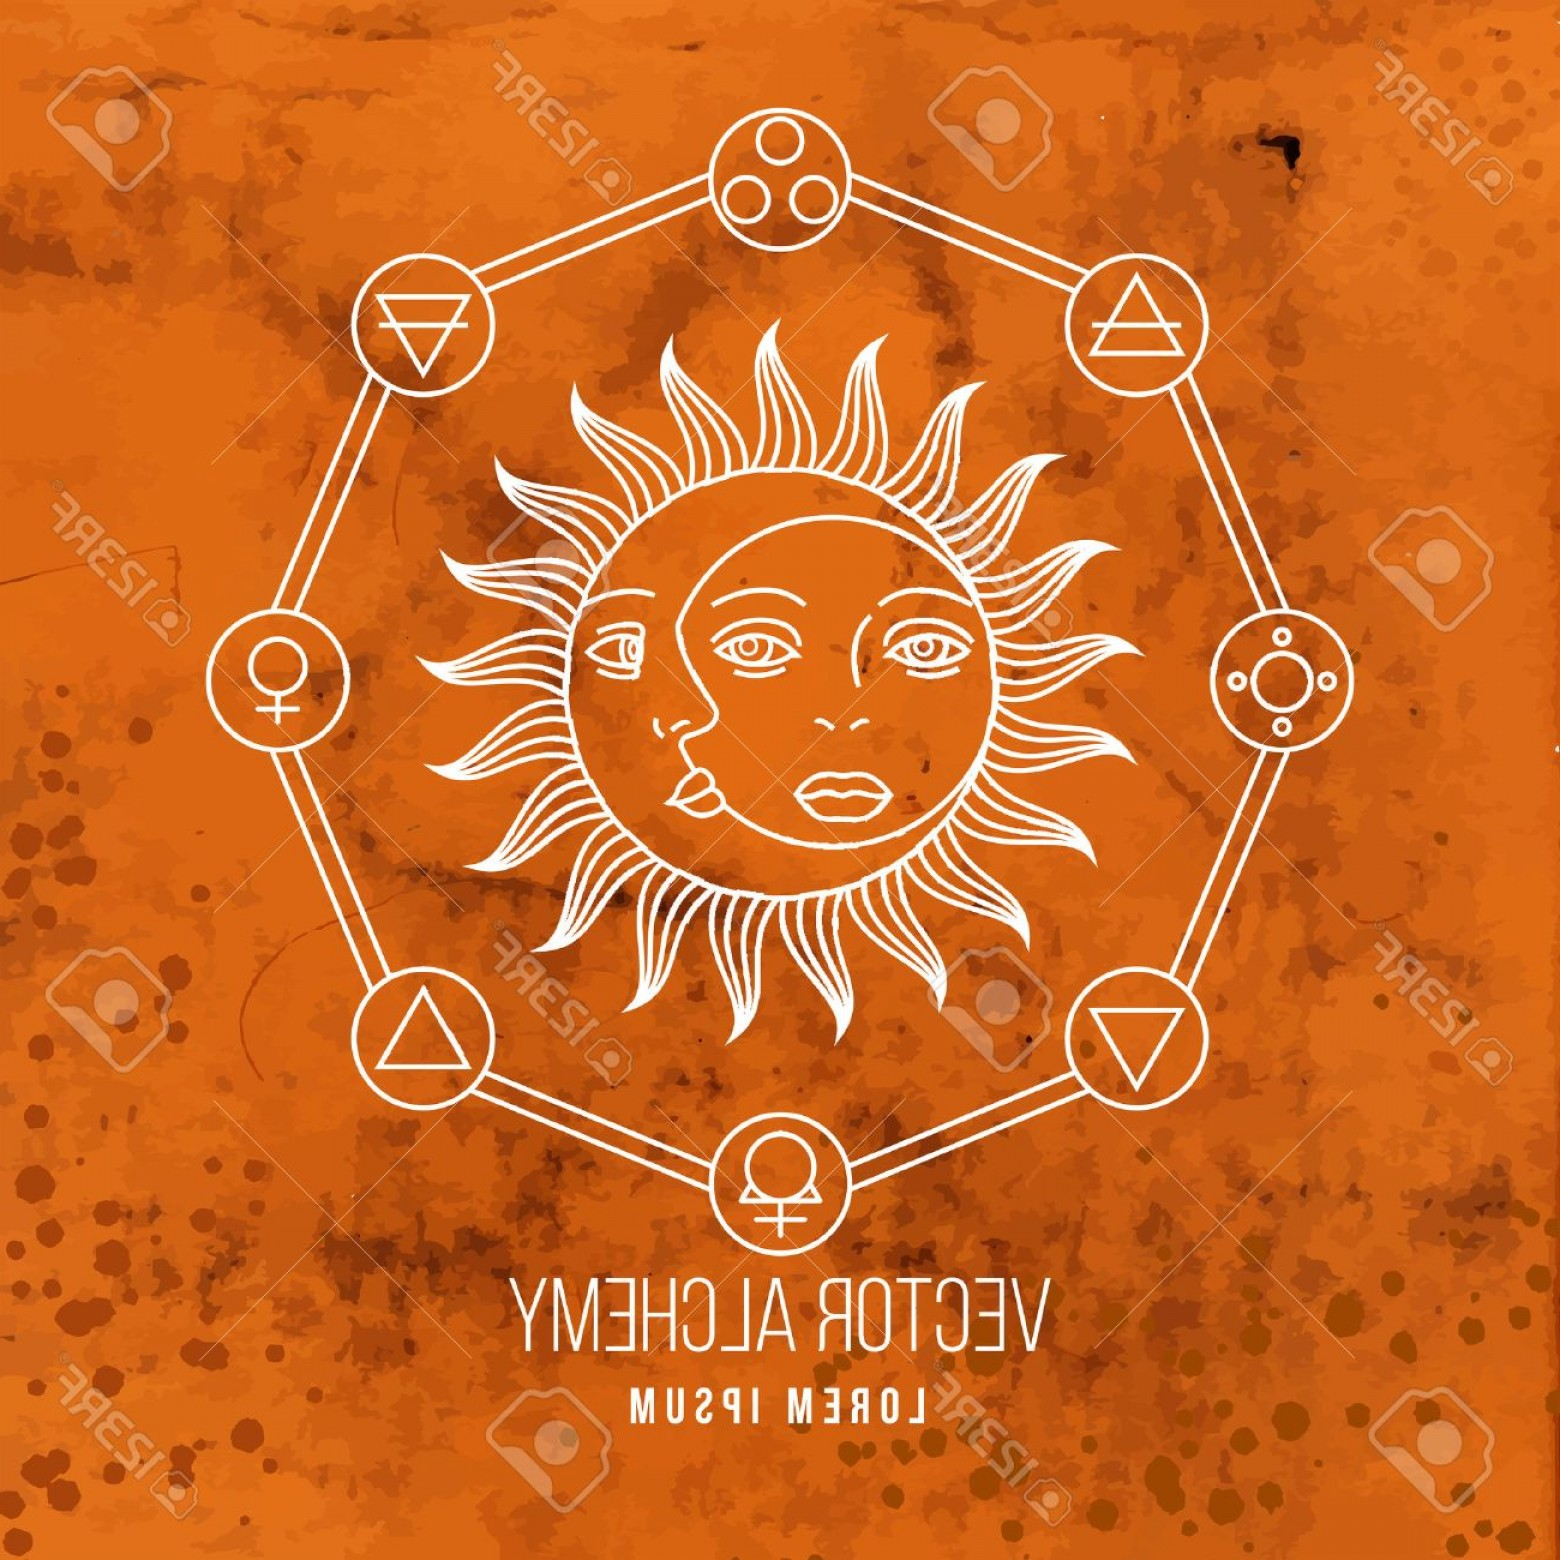 Geometric Sun Vector: Photostock Vector Vector Geometric Alchemy Symbol With Sun Moon Shapes And Abstract Occult And Mystic Signs Linear Log